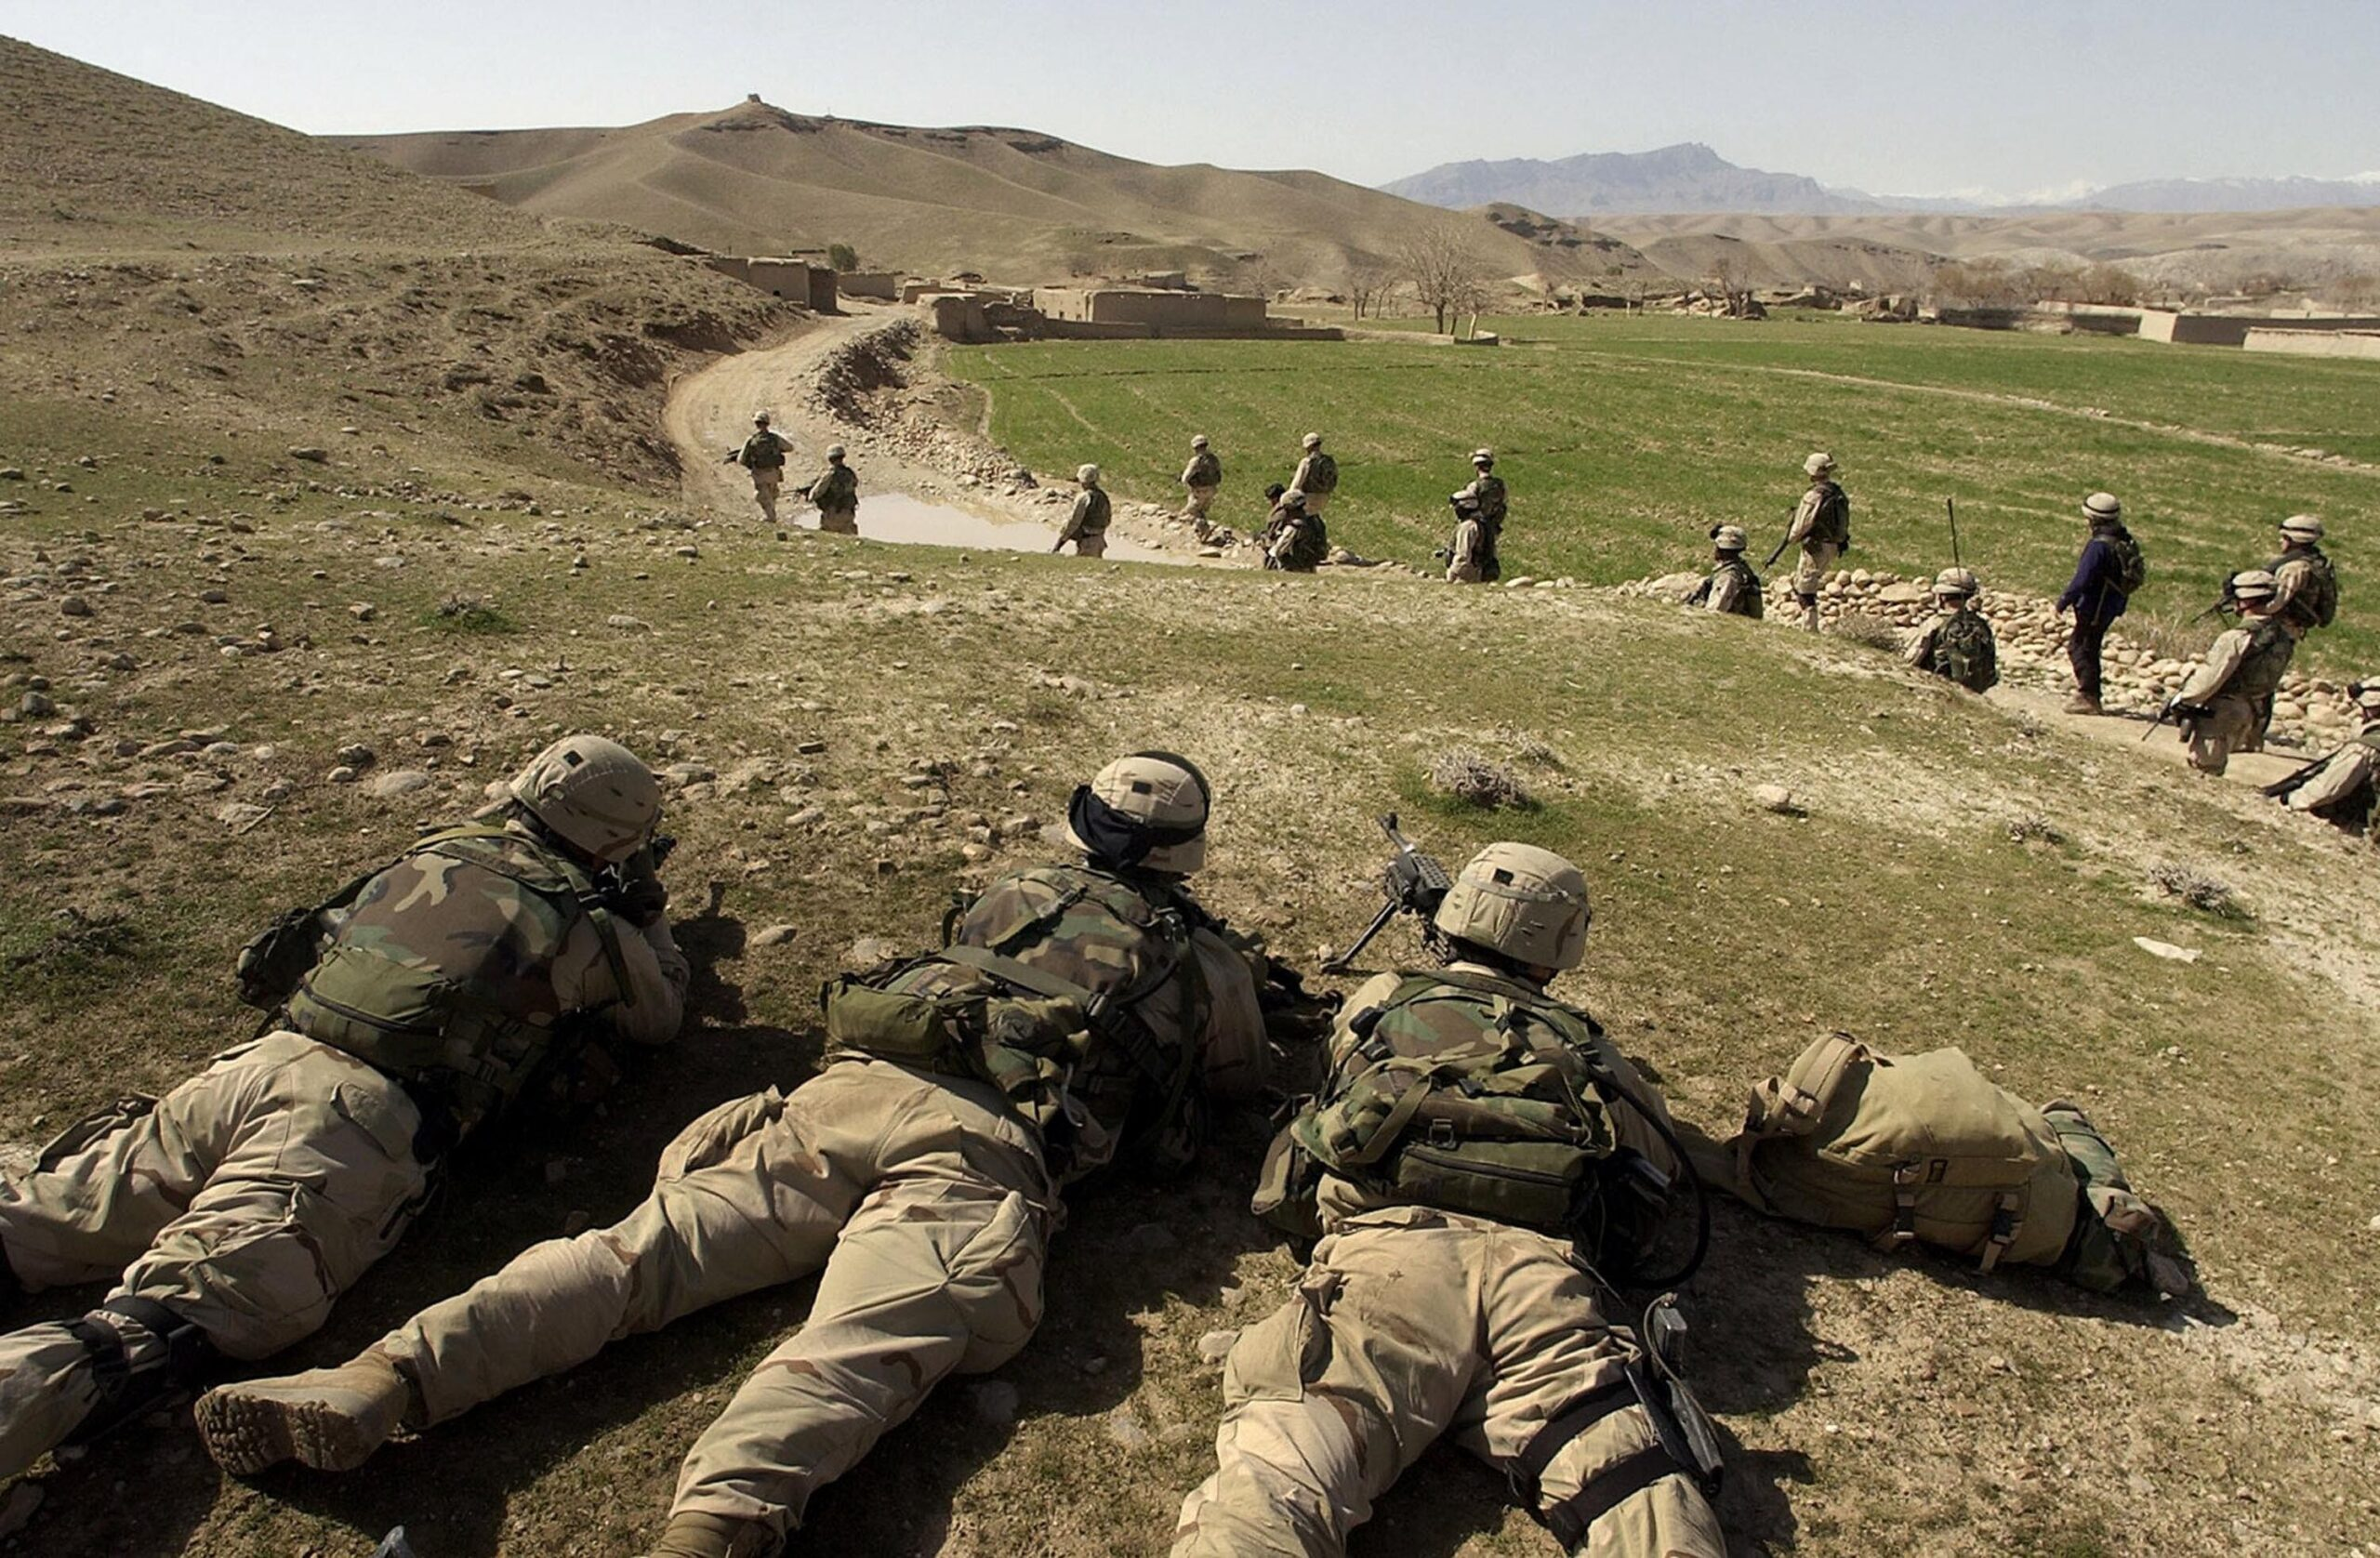 <i>David Swanson/Pool/Getty Images</i><br/>A Pentagon watchdog report on Afghanistan warns that the country's government could face an